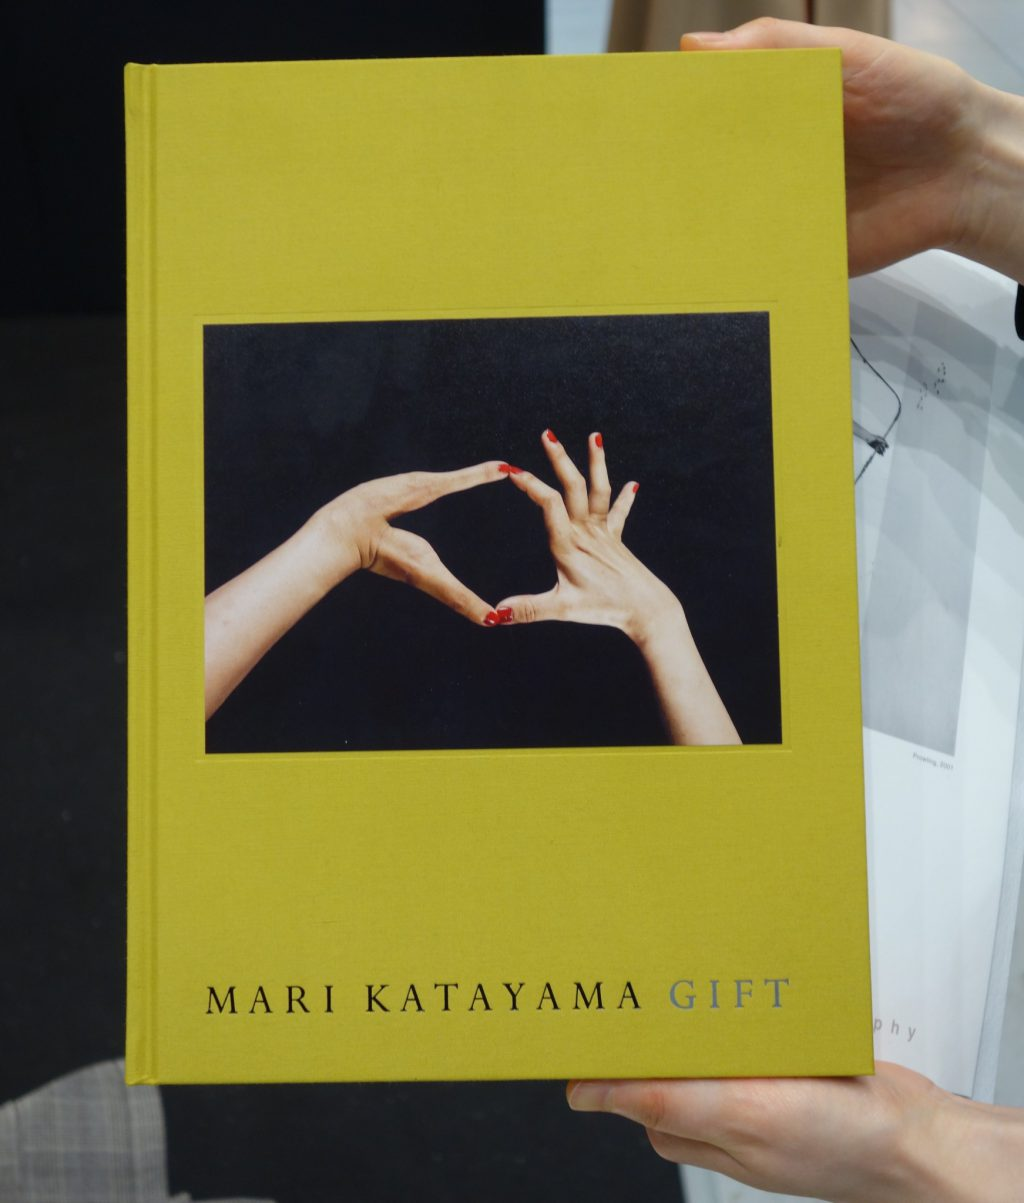 "The 1st artist book of KATAYAMA Mari ""GIFT"", highly recommending!"